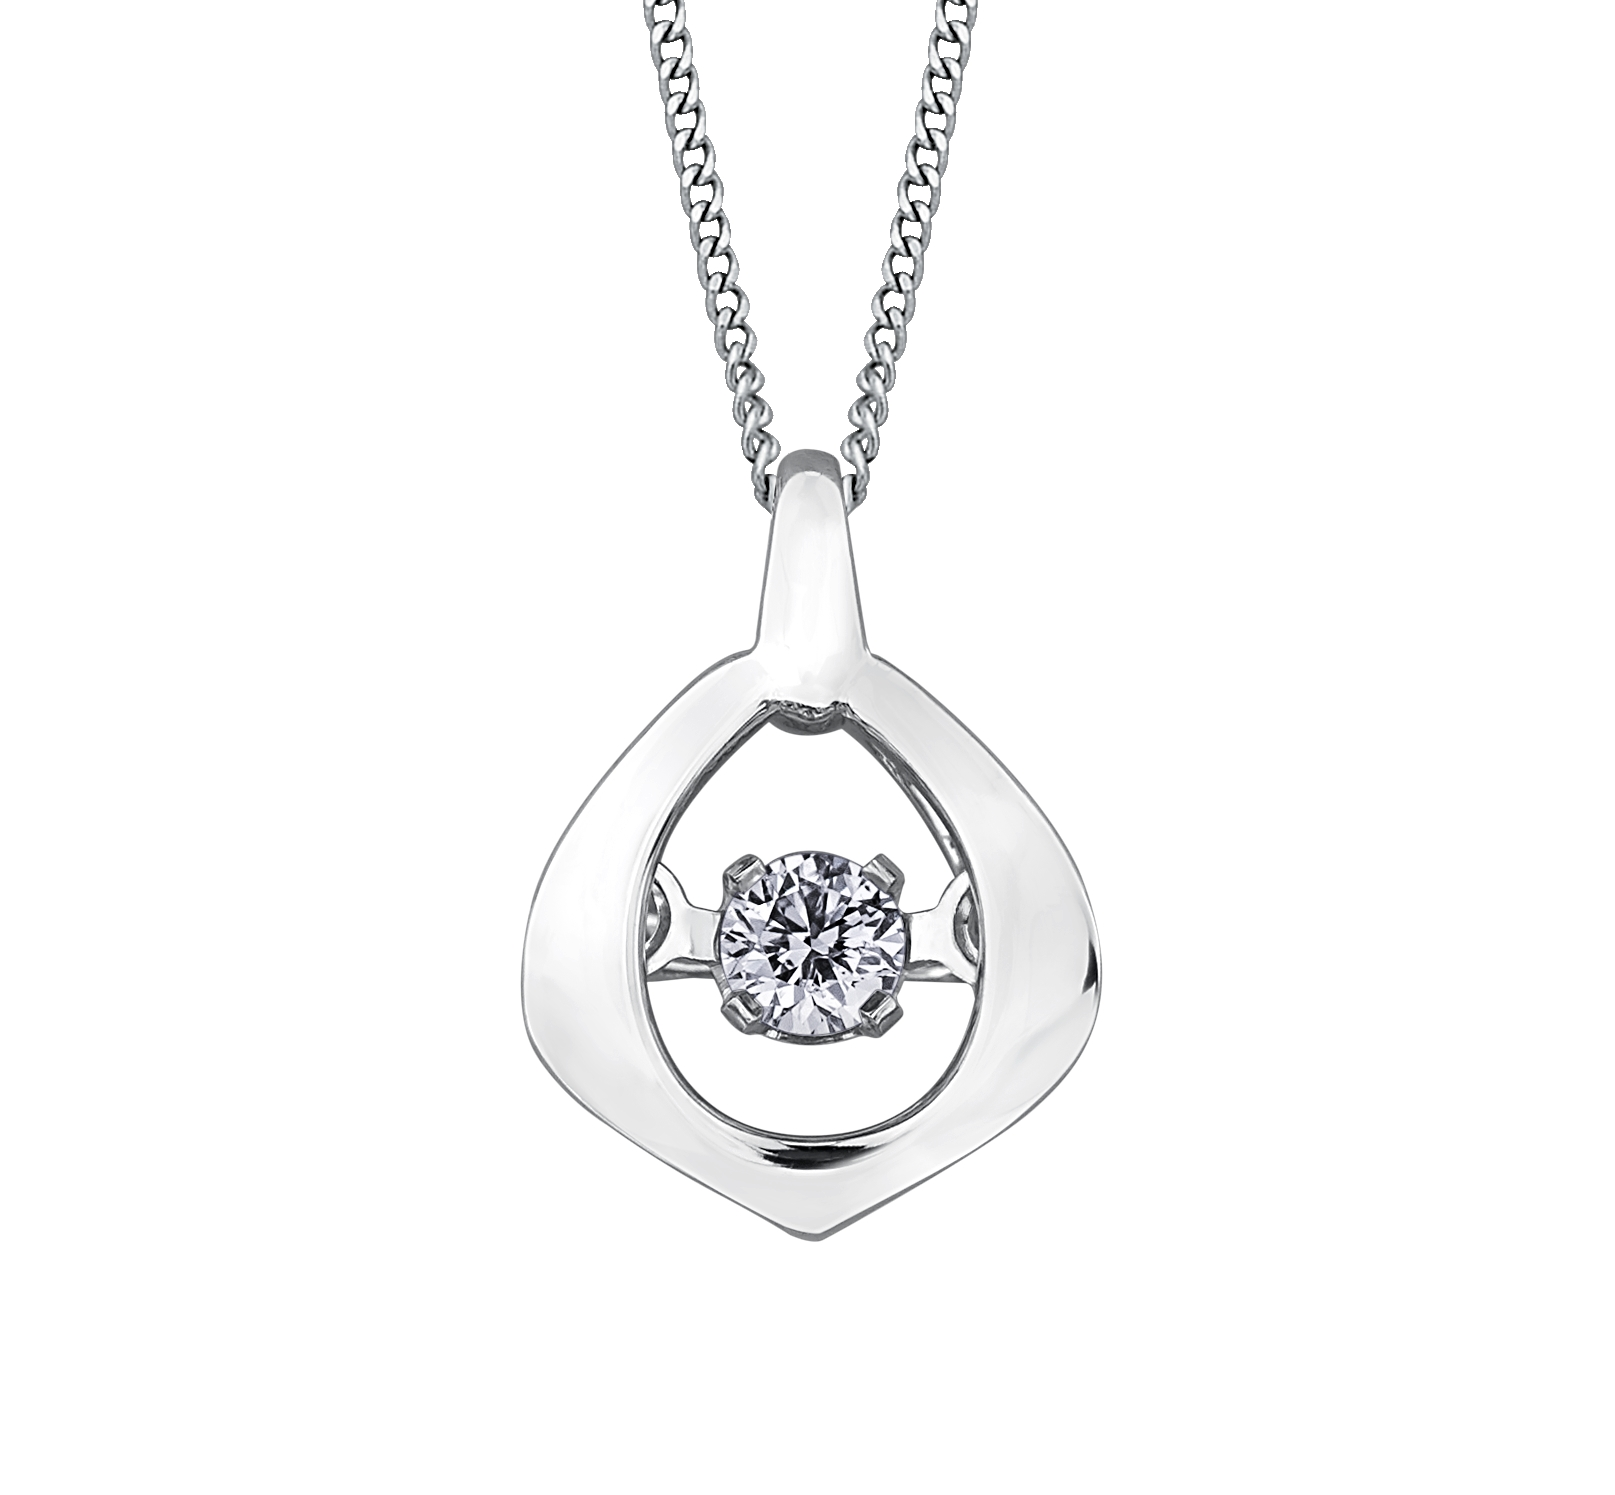 Pendentif - Or blanc 10K & Diamants Canadien totalisant 0.02 Carat